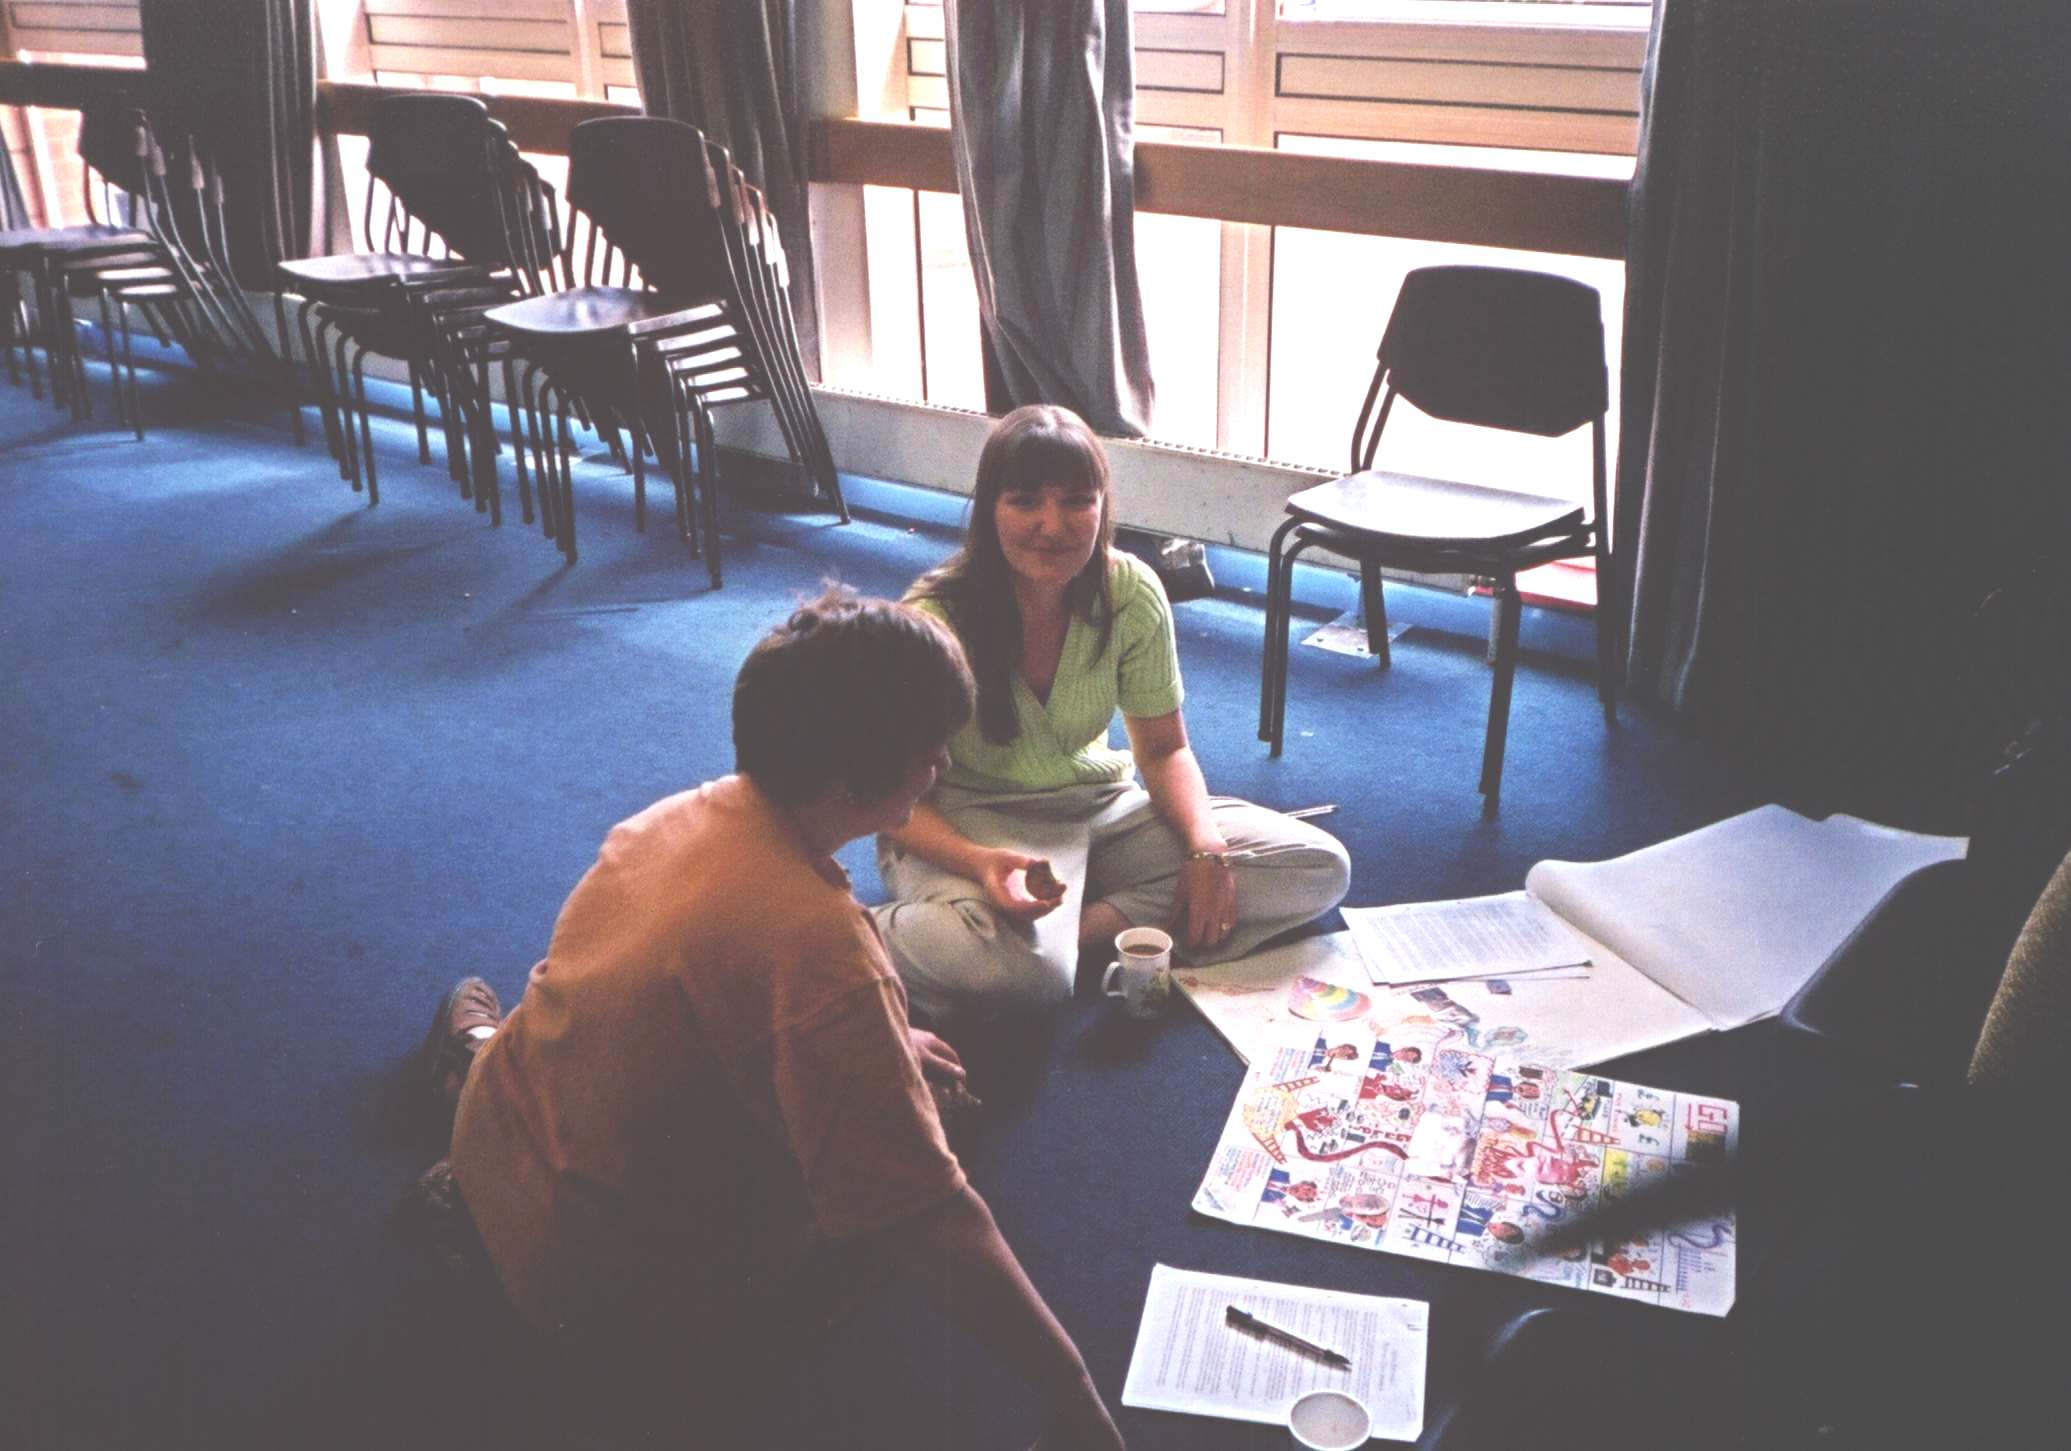 July 2001: Helen Ezard (Partnerships in Care plc, Beverley) and Jennifer Crossland (Europarc Innovation Centre, Grimsby) working on a colourful case study, employing Jennifer's considerable graphic skills